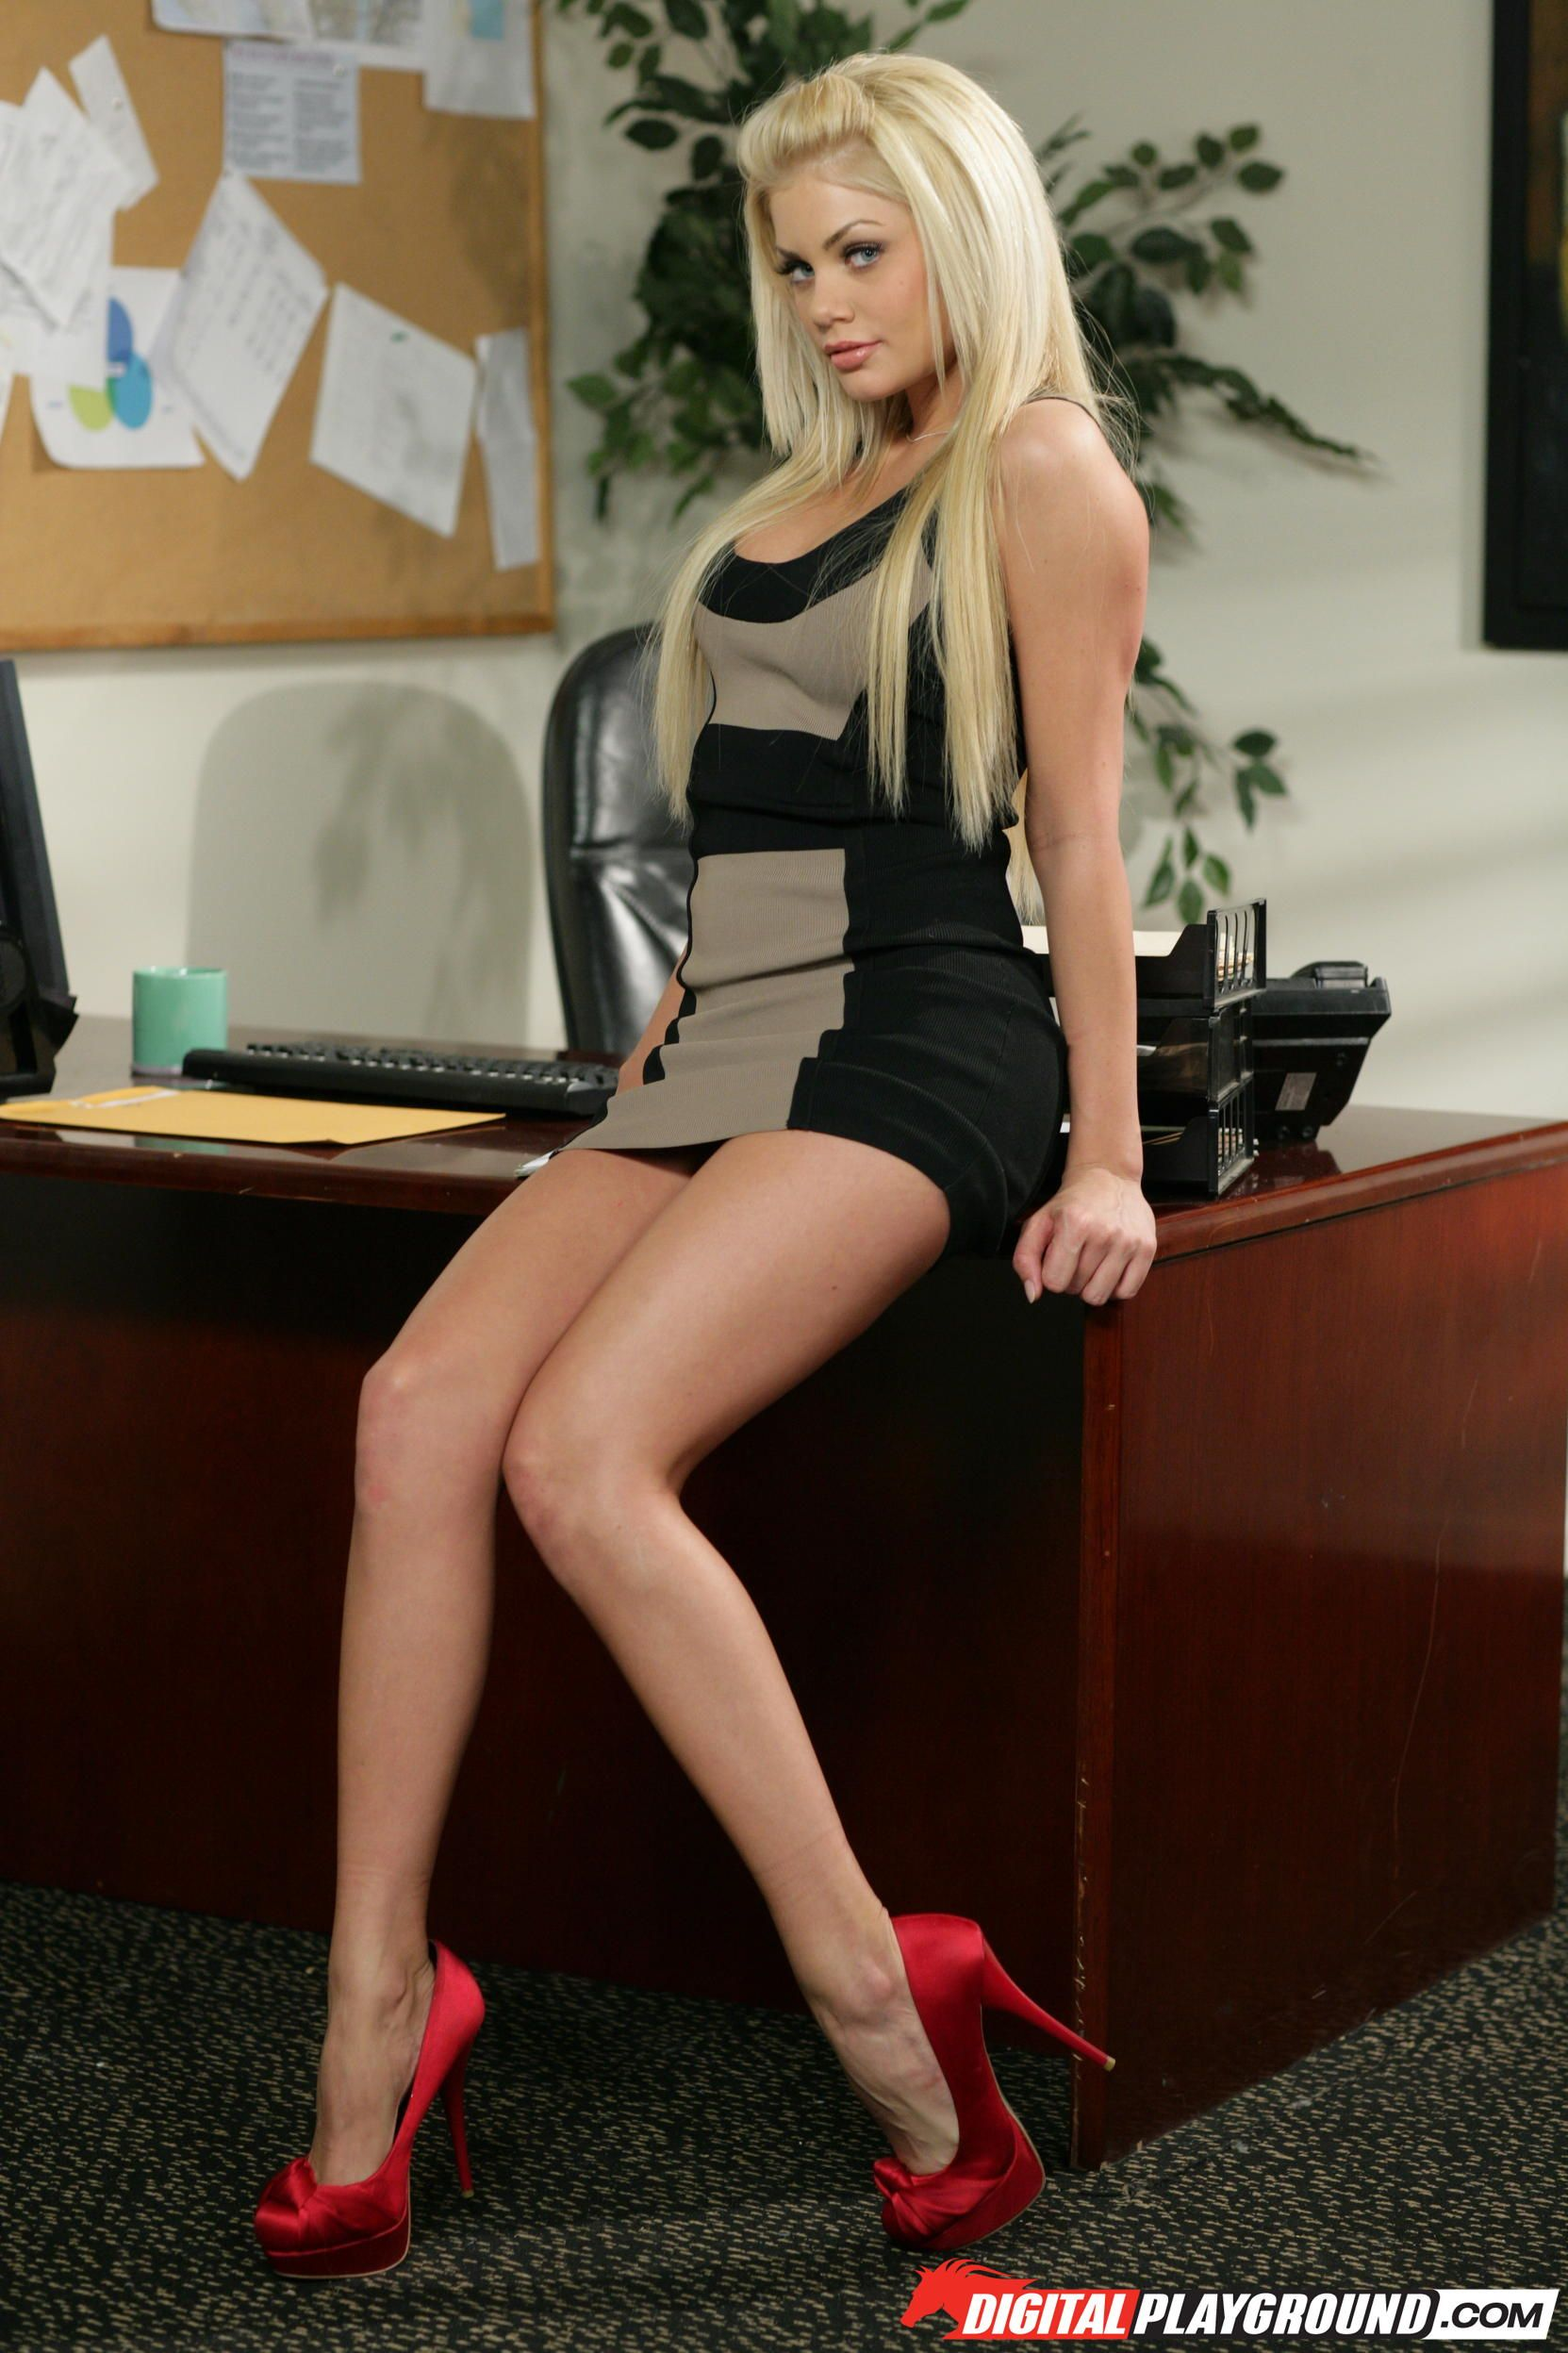 Riley steele chic